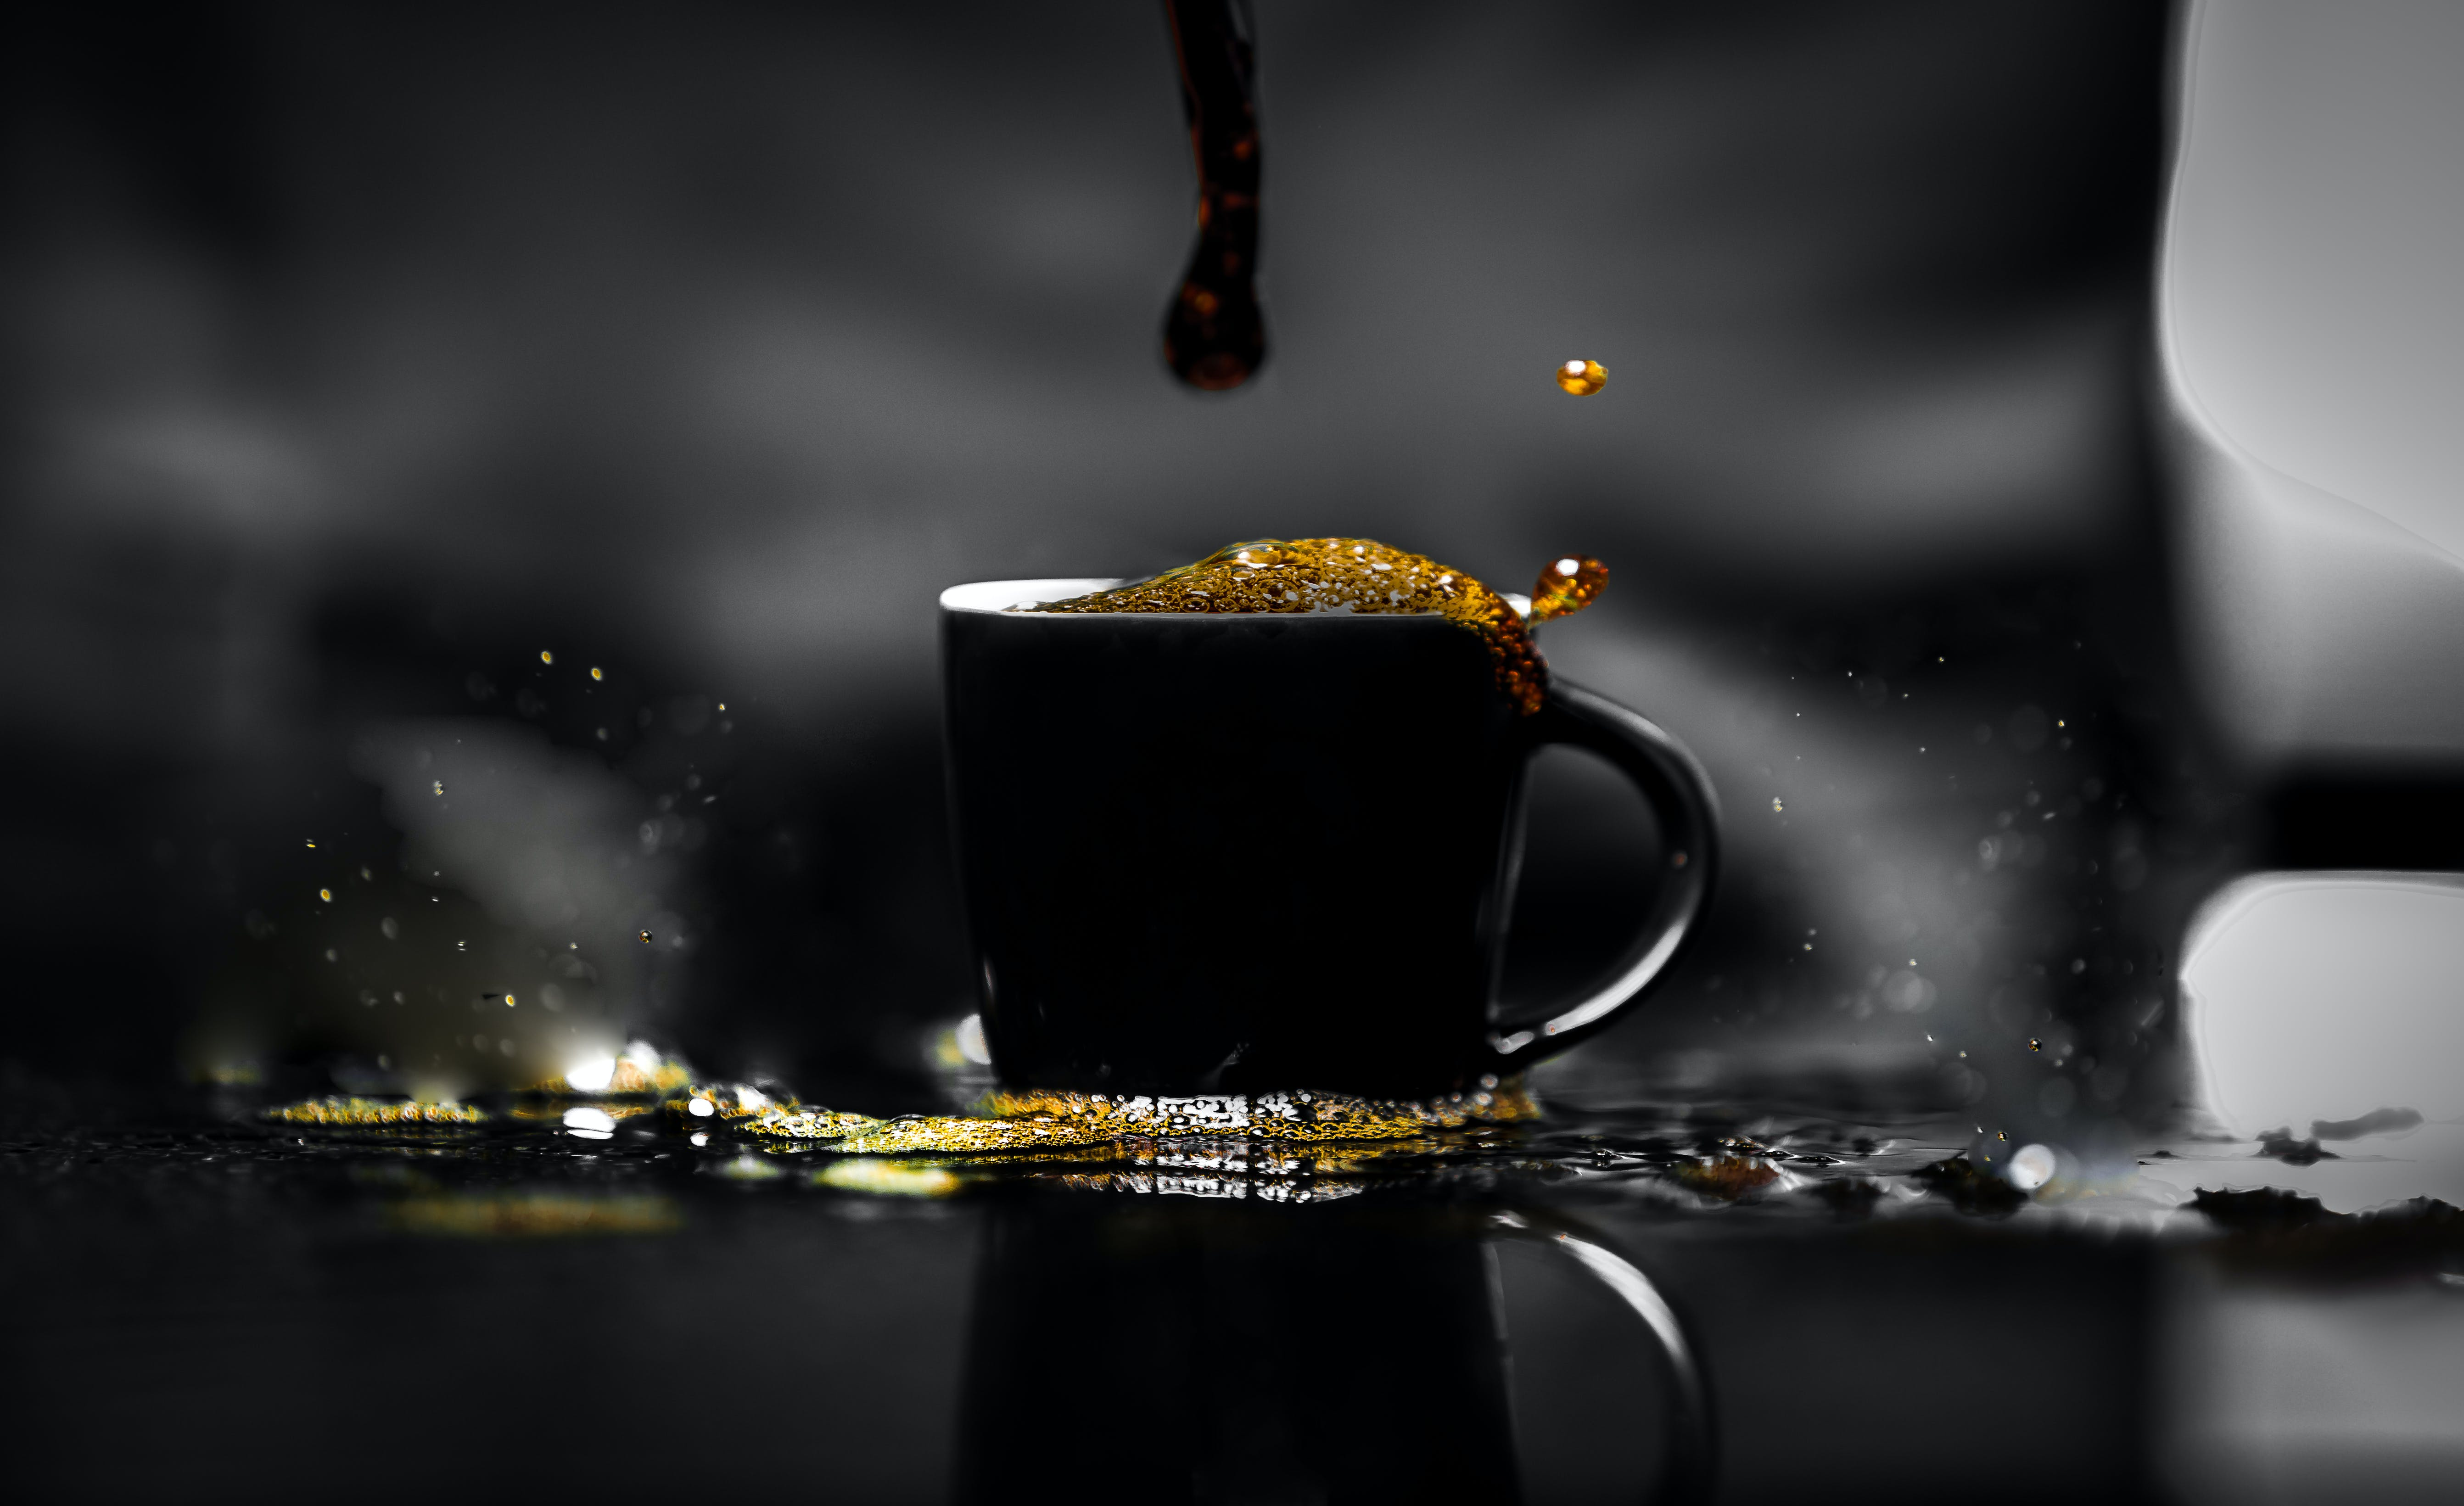 Macro Photography of Spilled Coffee-filled Teacup